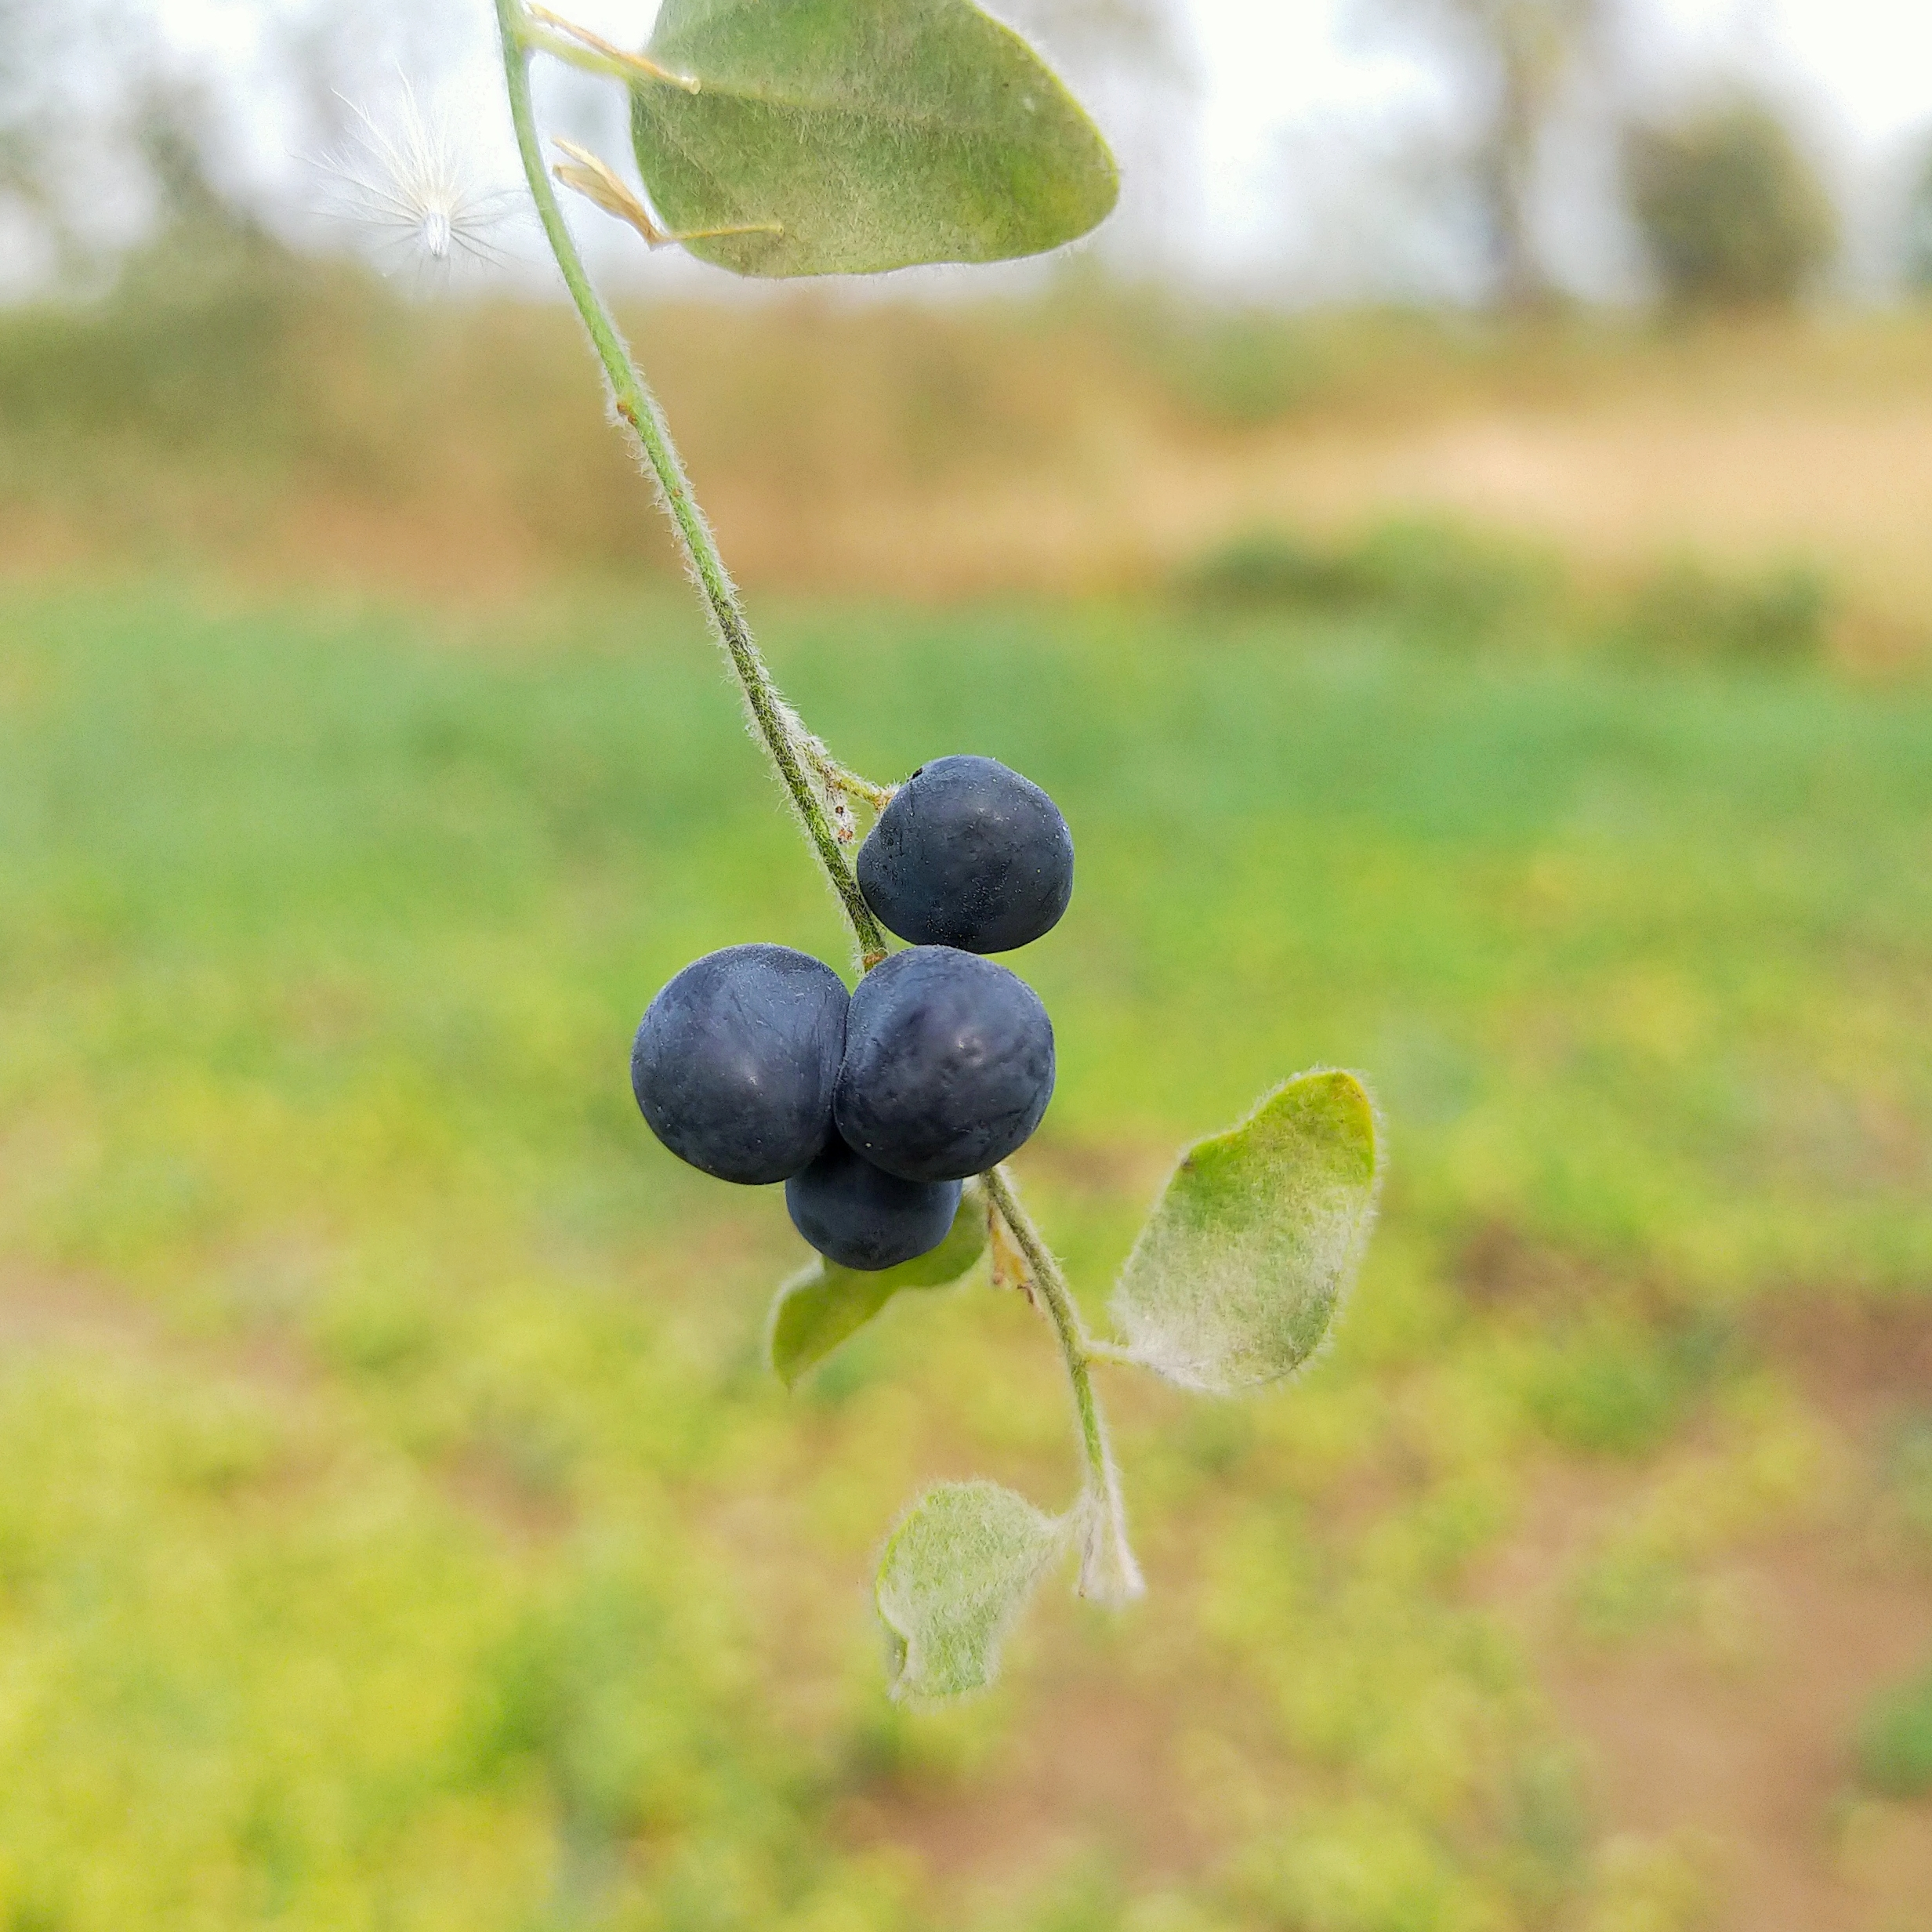 Black berries of a plant